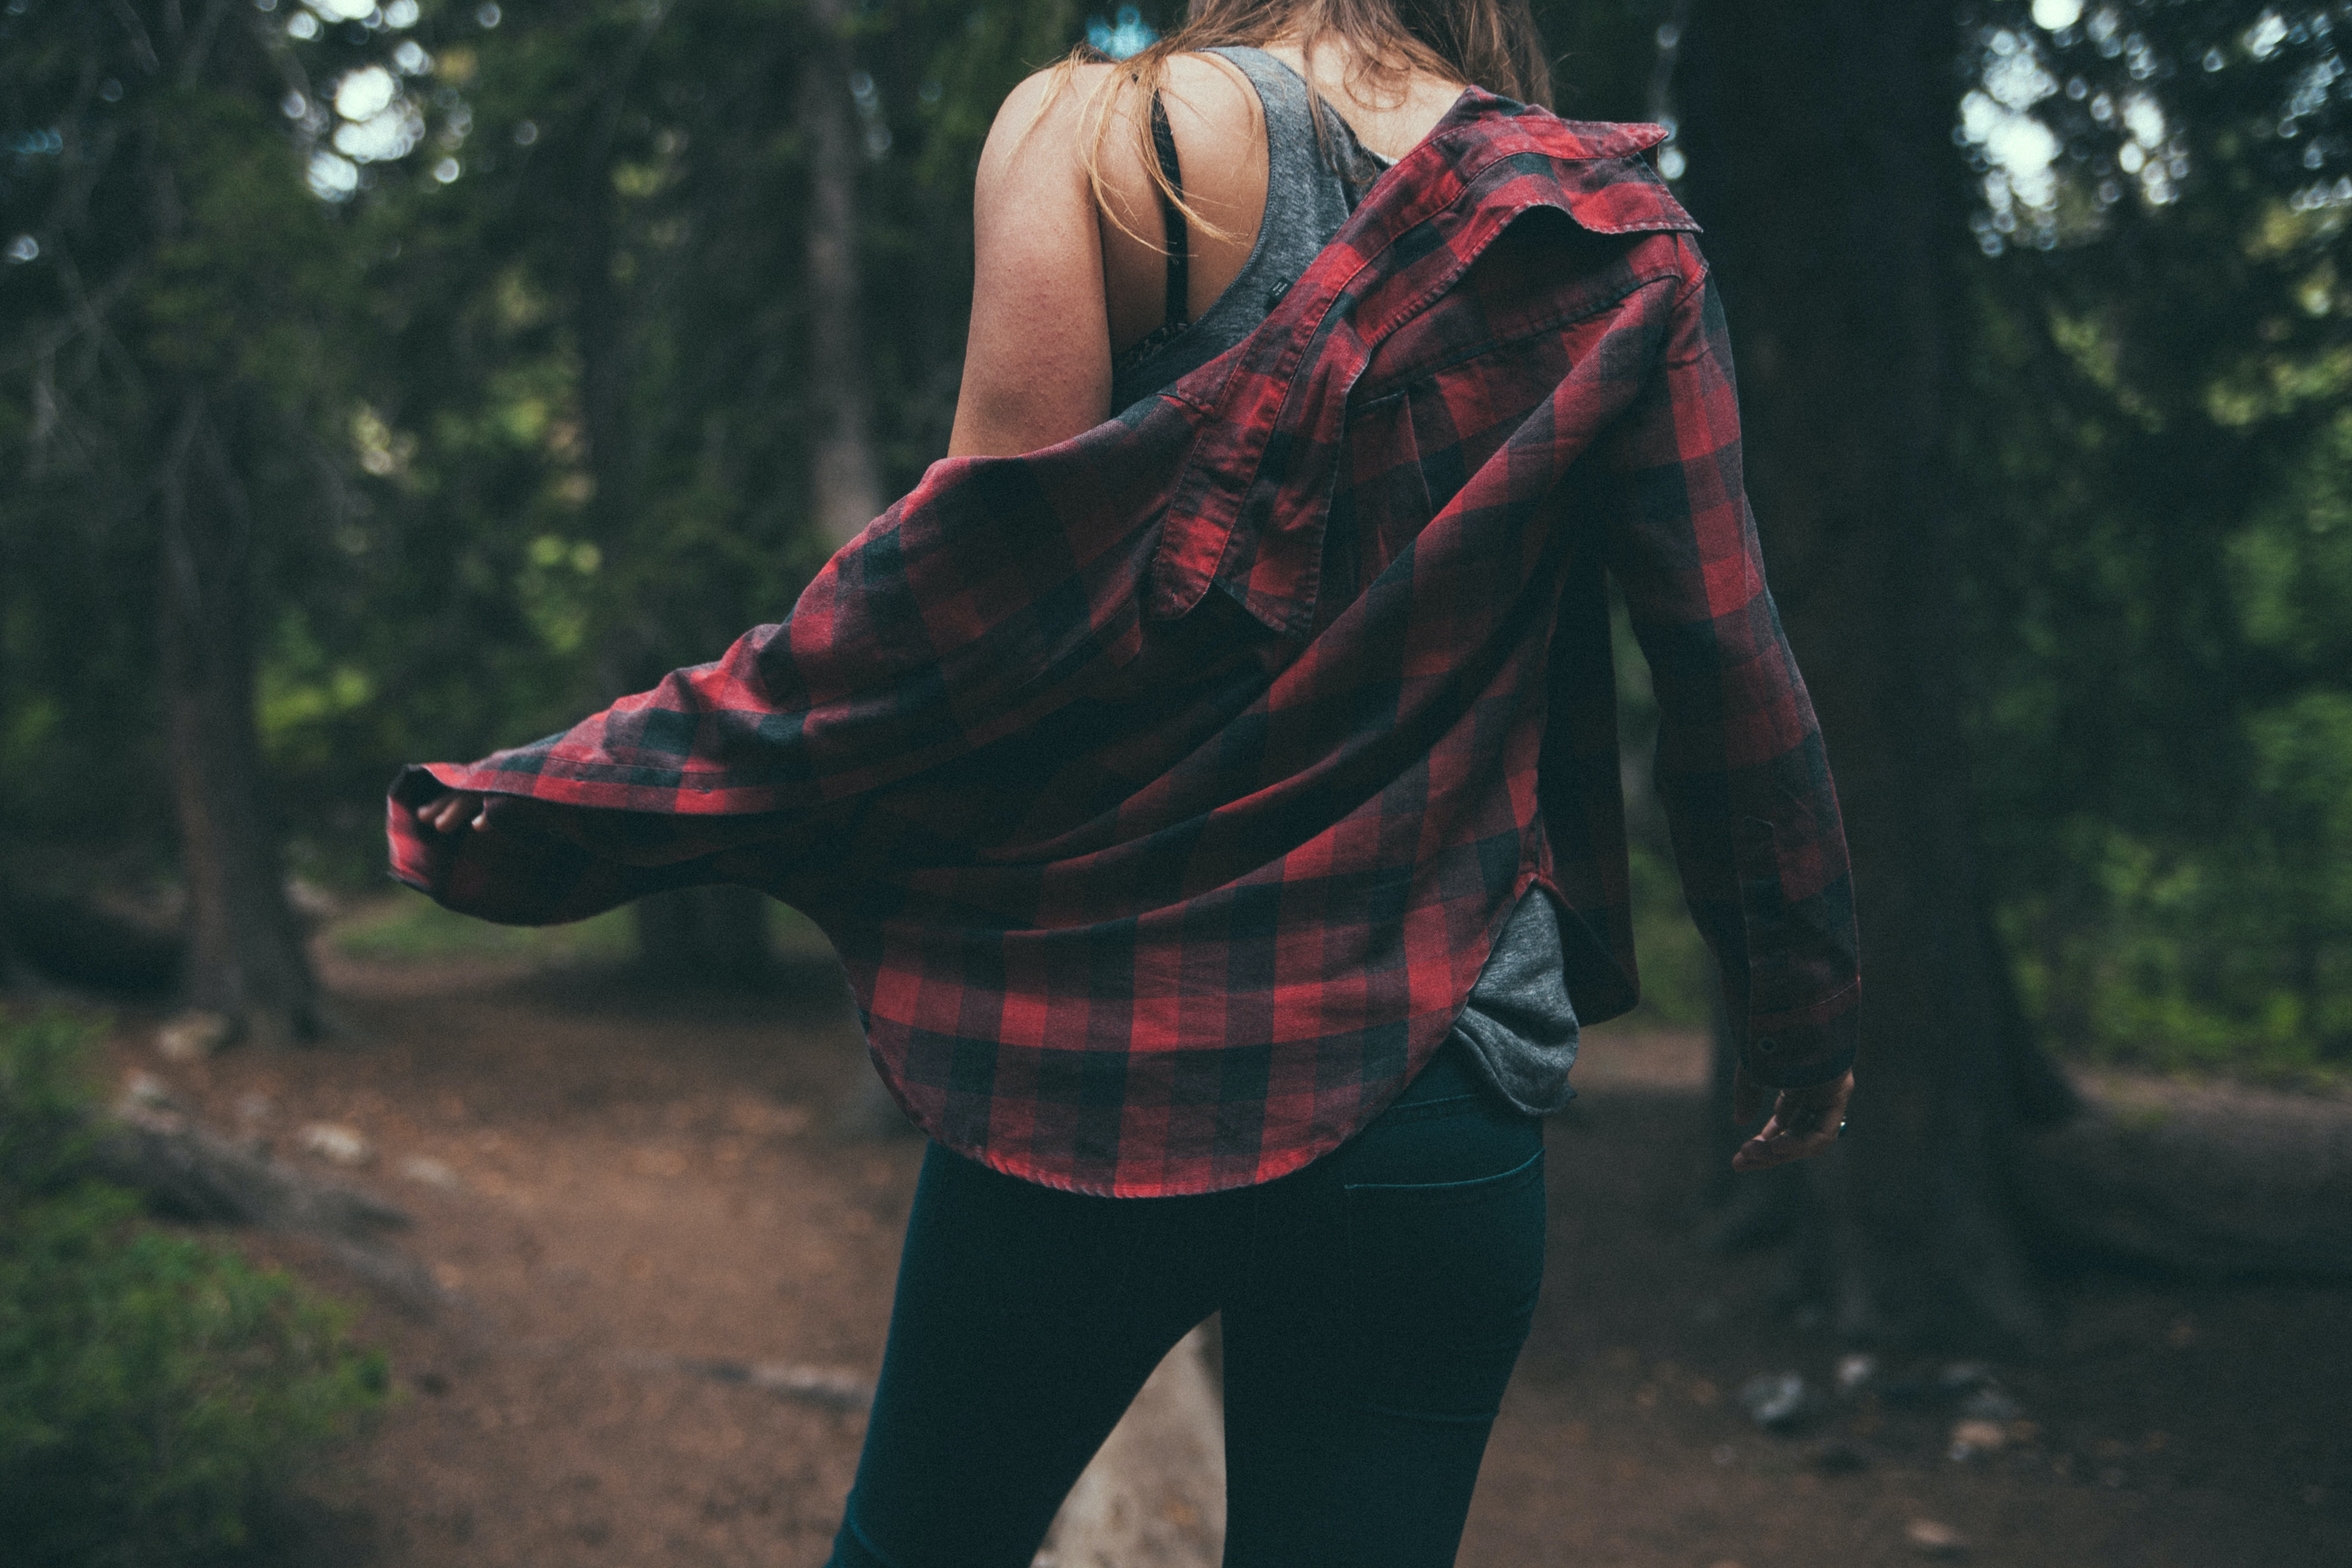 A woman taking off her flannel shirt in a forest